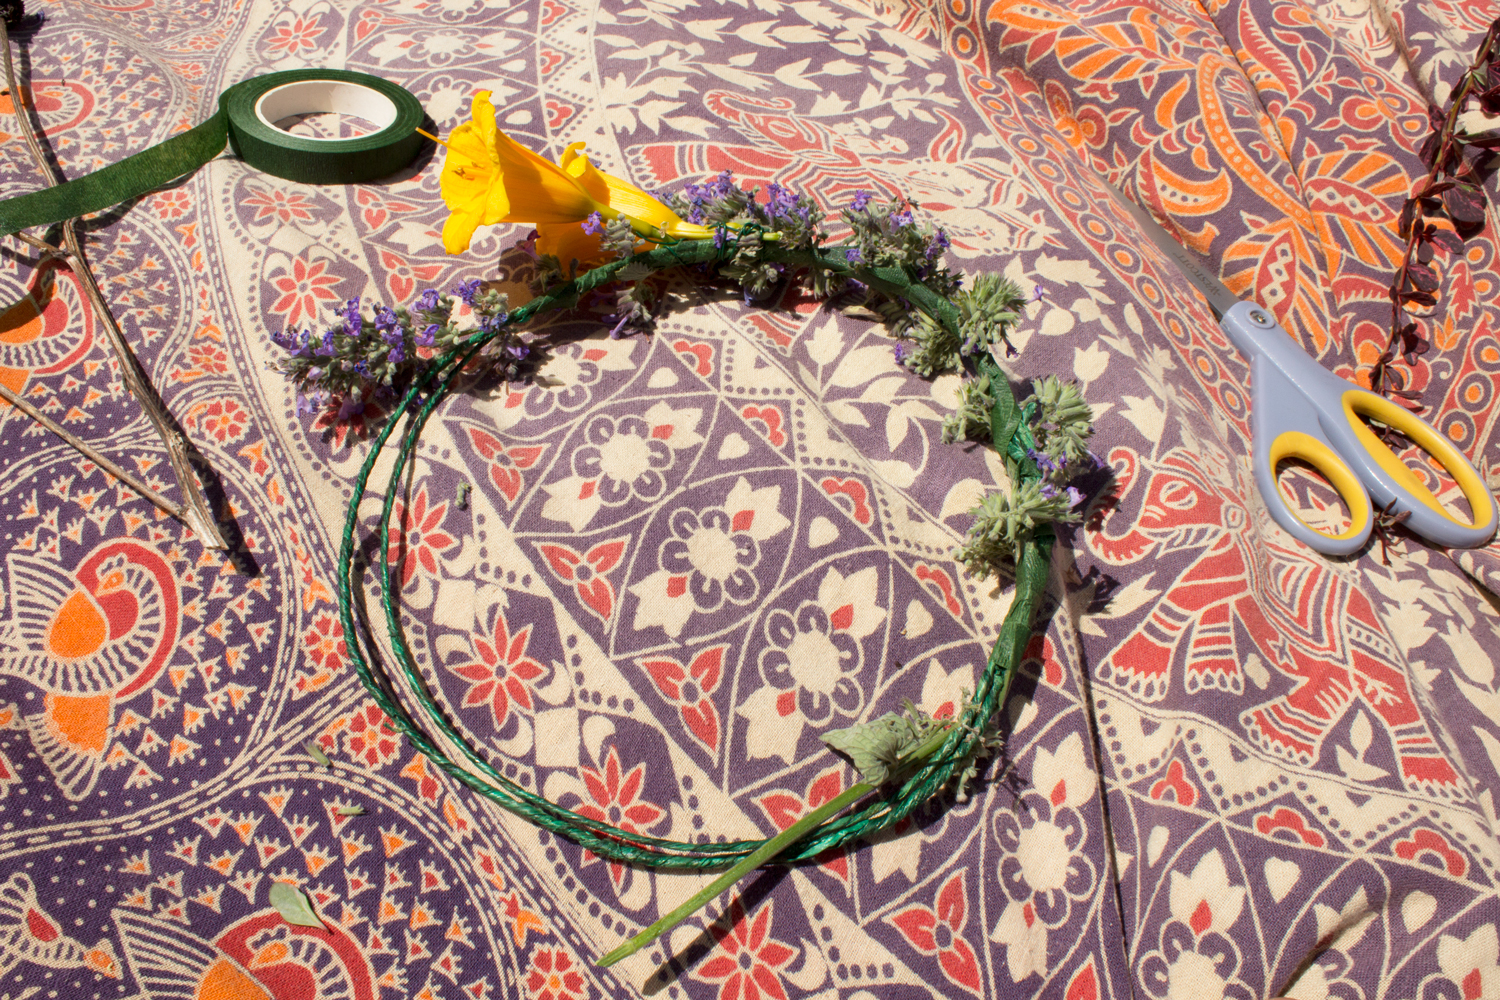 diy flower crown headband 1 - Hippie Flower Crown- DIY Flower Crown Headband